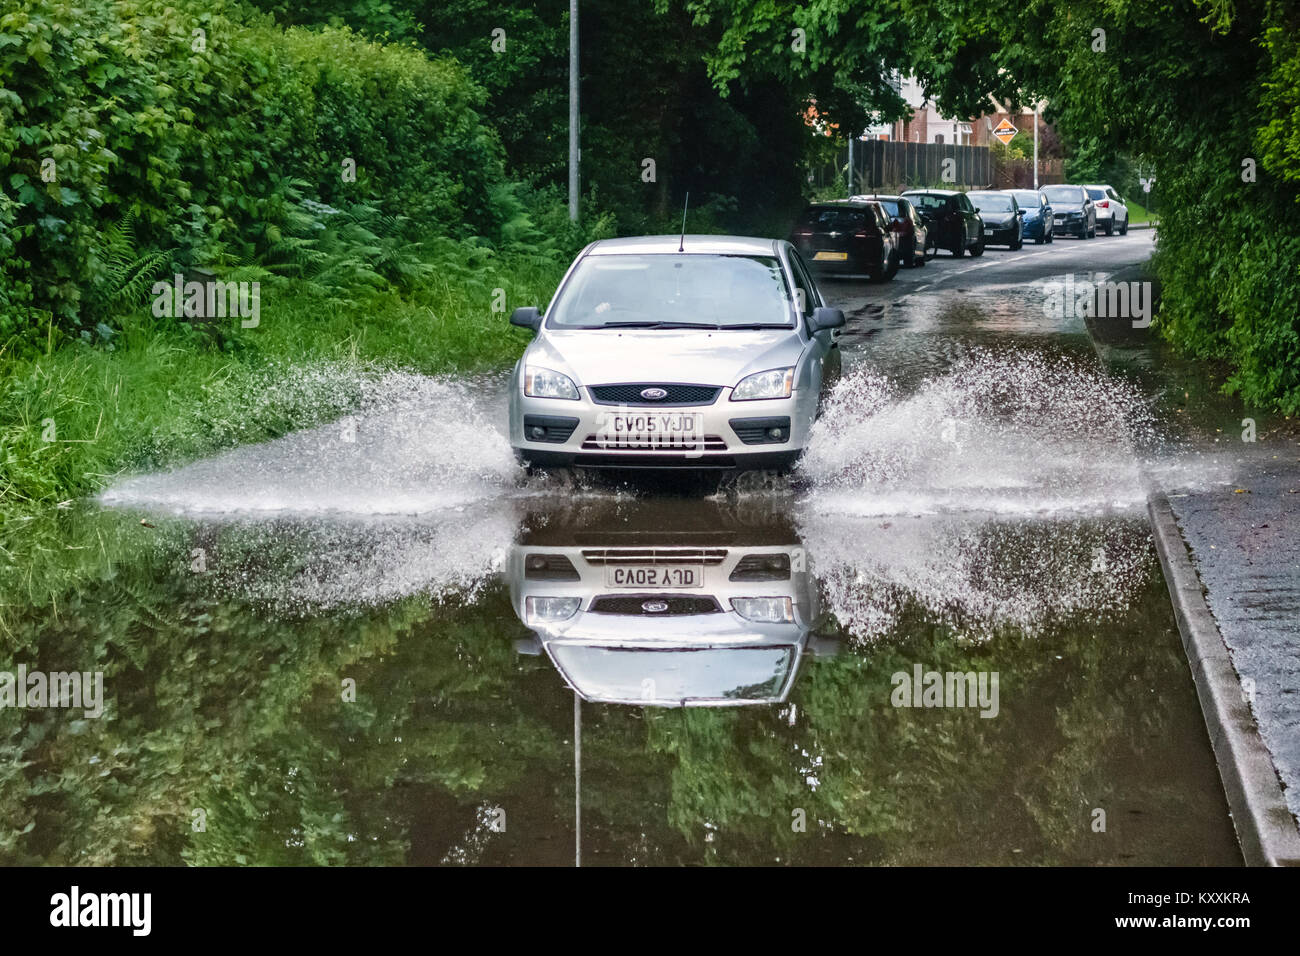 Presteigne, Powys, Wales, UK. A car crossing a flooded stretch of road, the flooding caused by sudden heavy rain - Stock Image